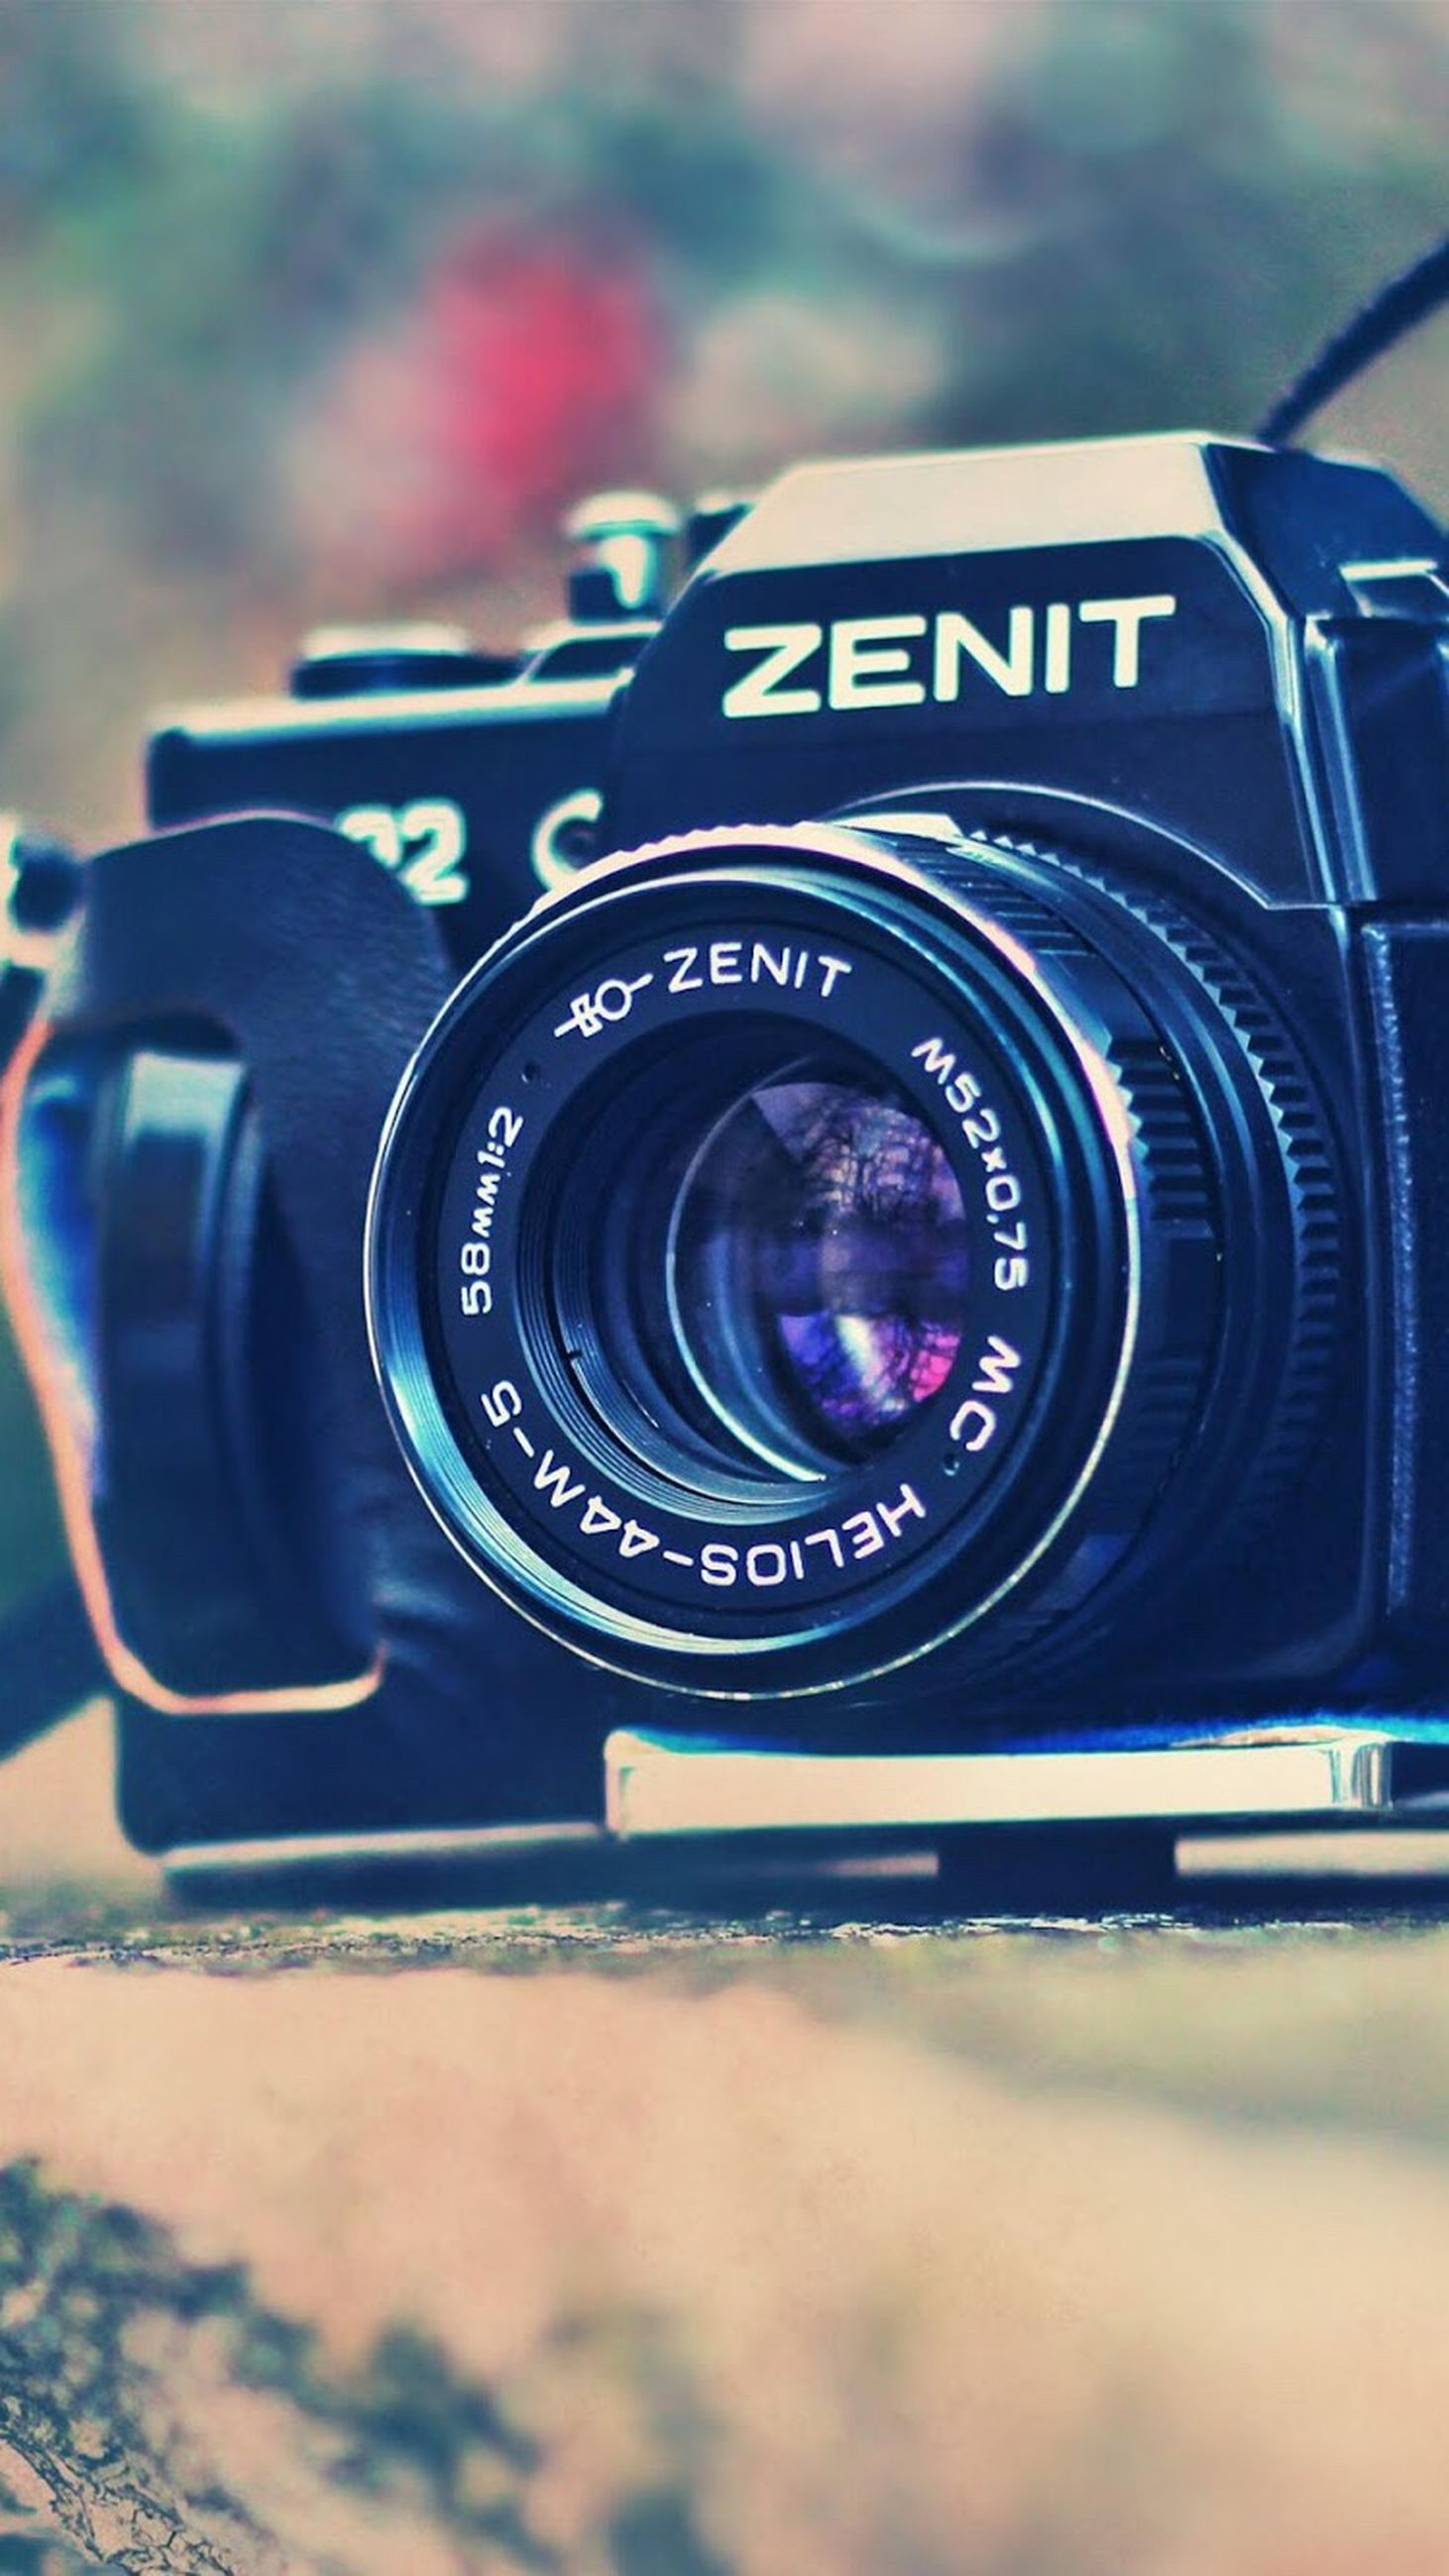 camera - photographic equipment, photography themes, digital camera, technology, close-up, focus on foreground, outdoors, camera, no people, modern, day, photographing, slr camera, digital single-lens reflex camera